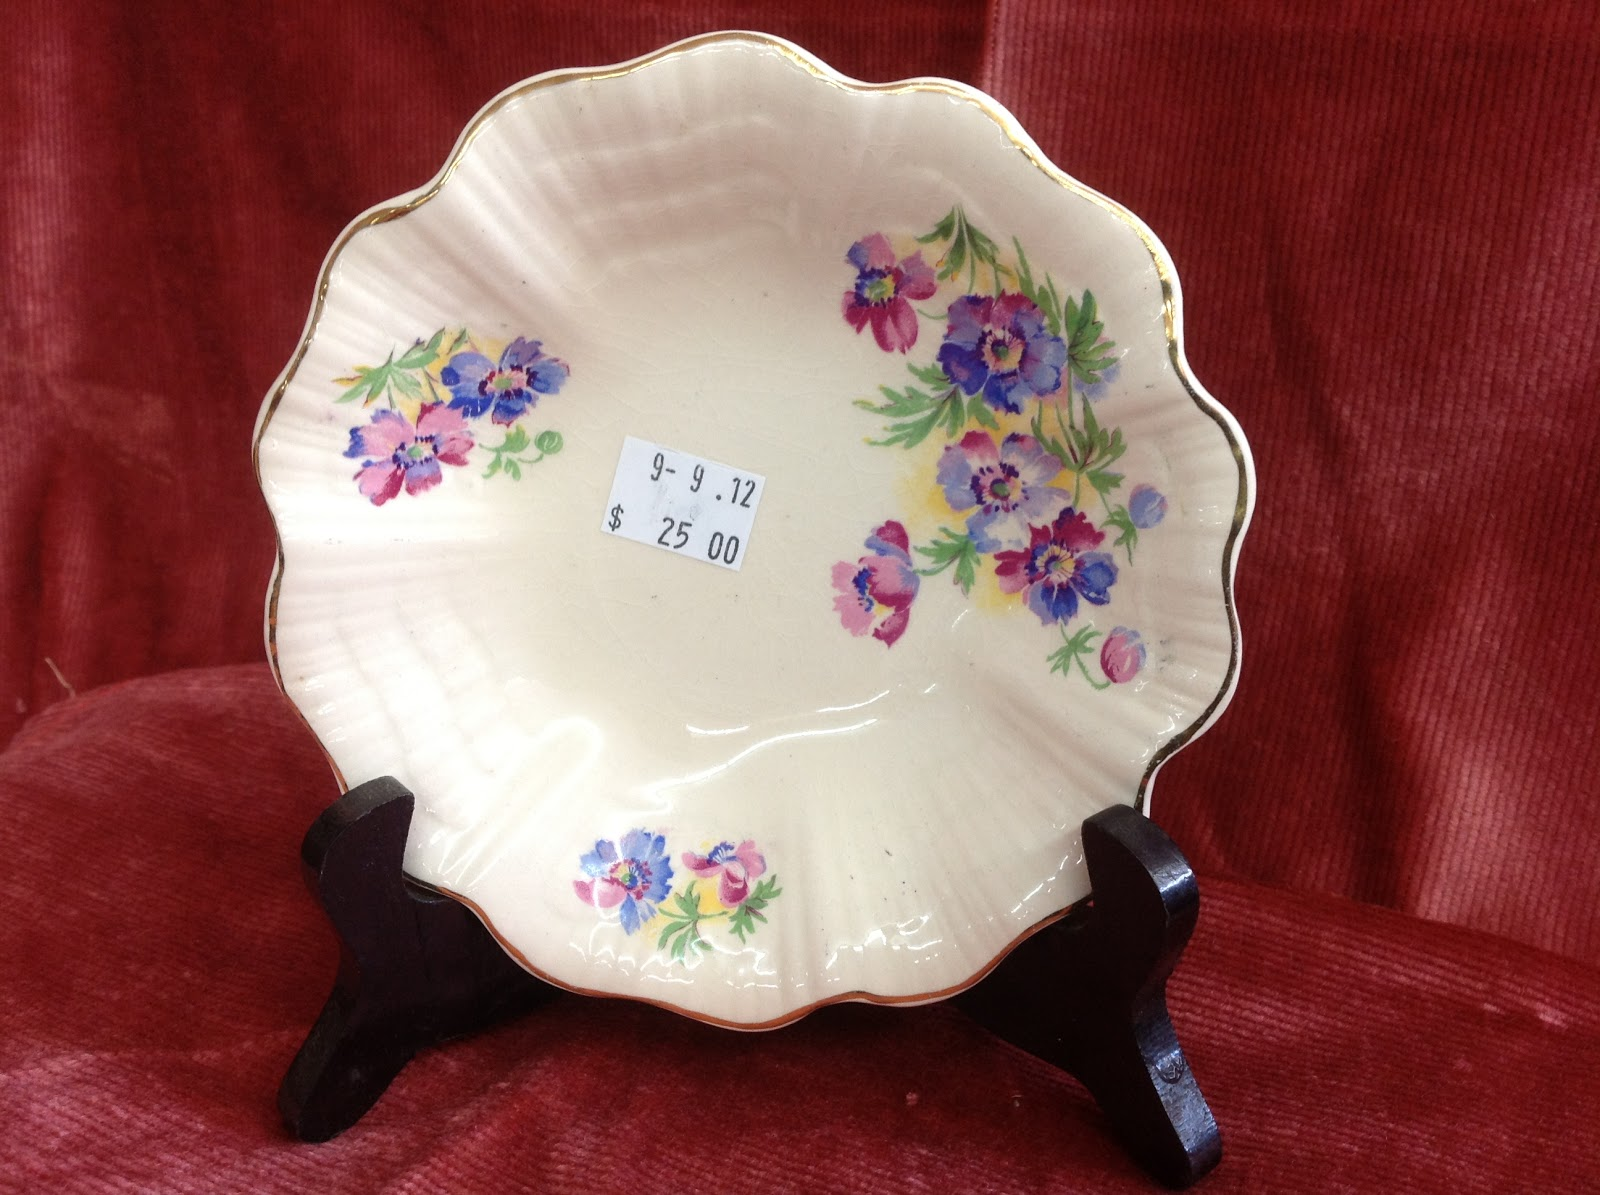 Pretty fluted bone china dish - England pink and purple sprays of flowers